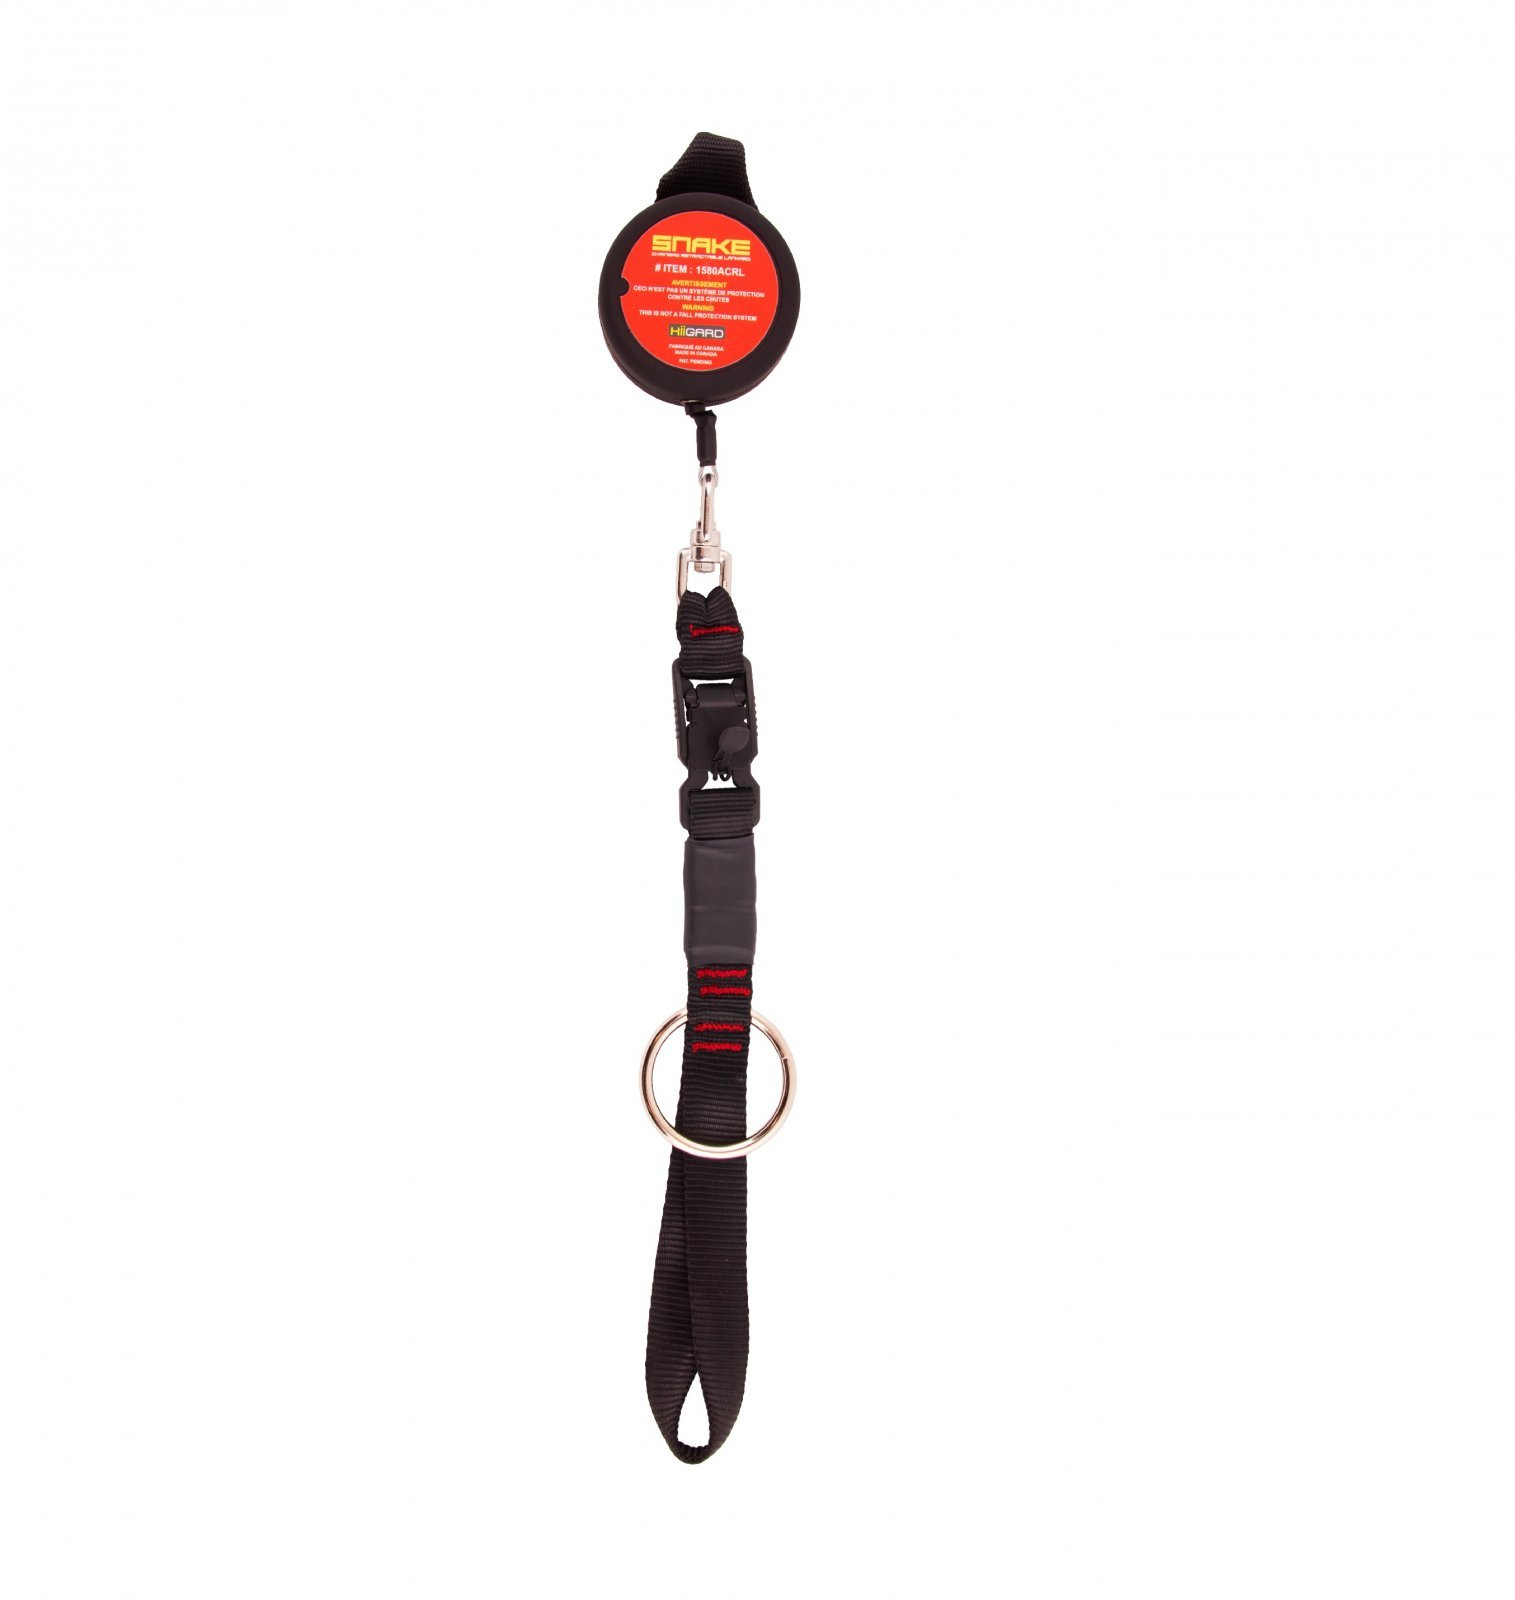 SL TECH Chainsaw retractable lanyard SNAKE by HiiGARD